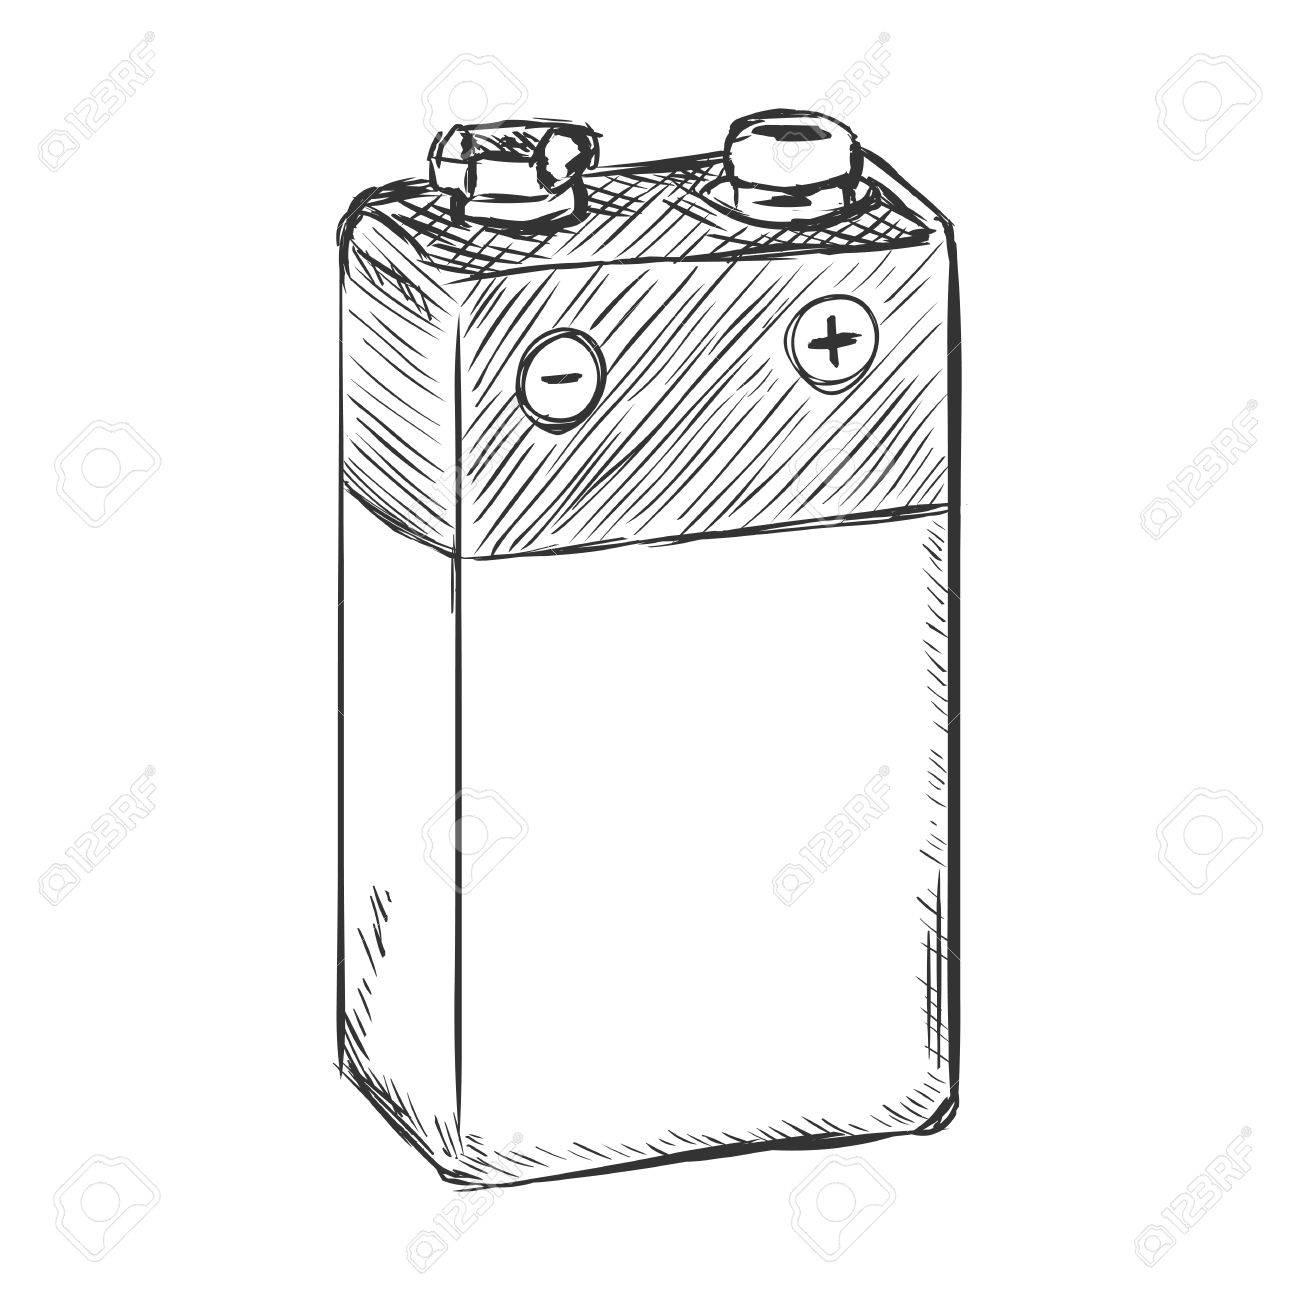 battery clipart sketch